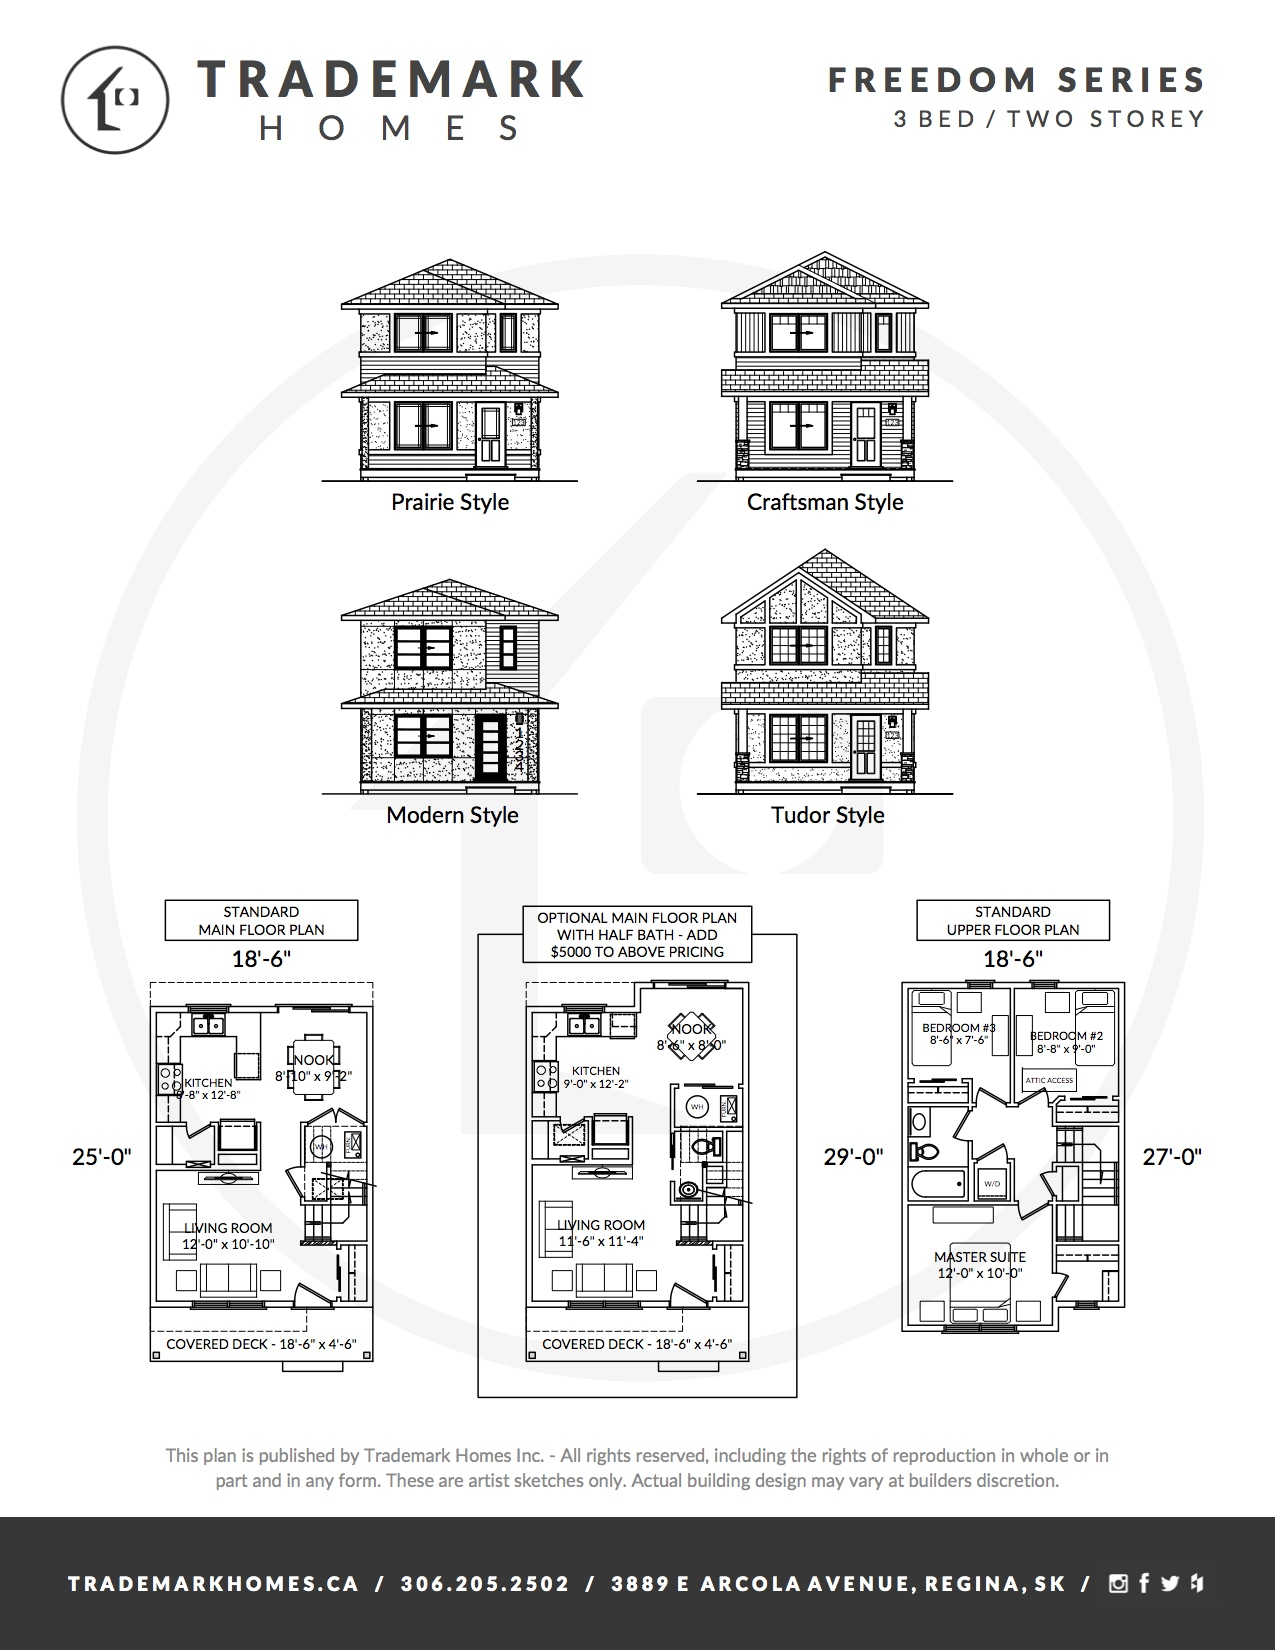 Freedom Home - 3 Bedroom - 2 Storey - Regina Home Builder